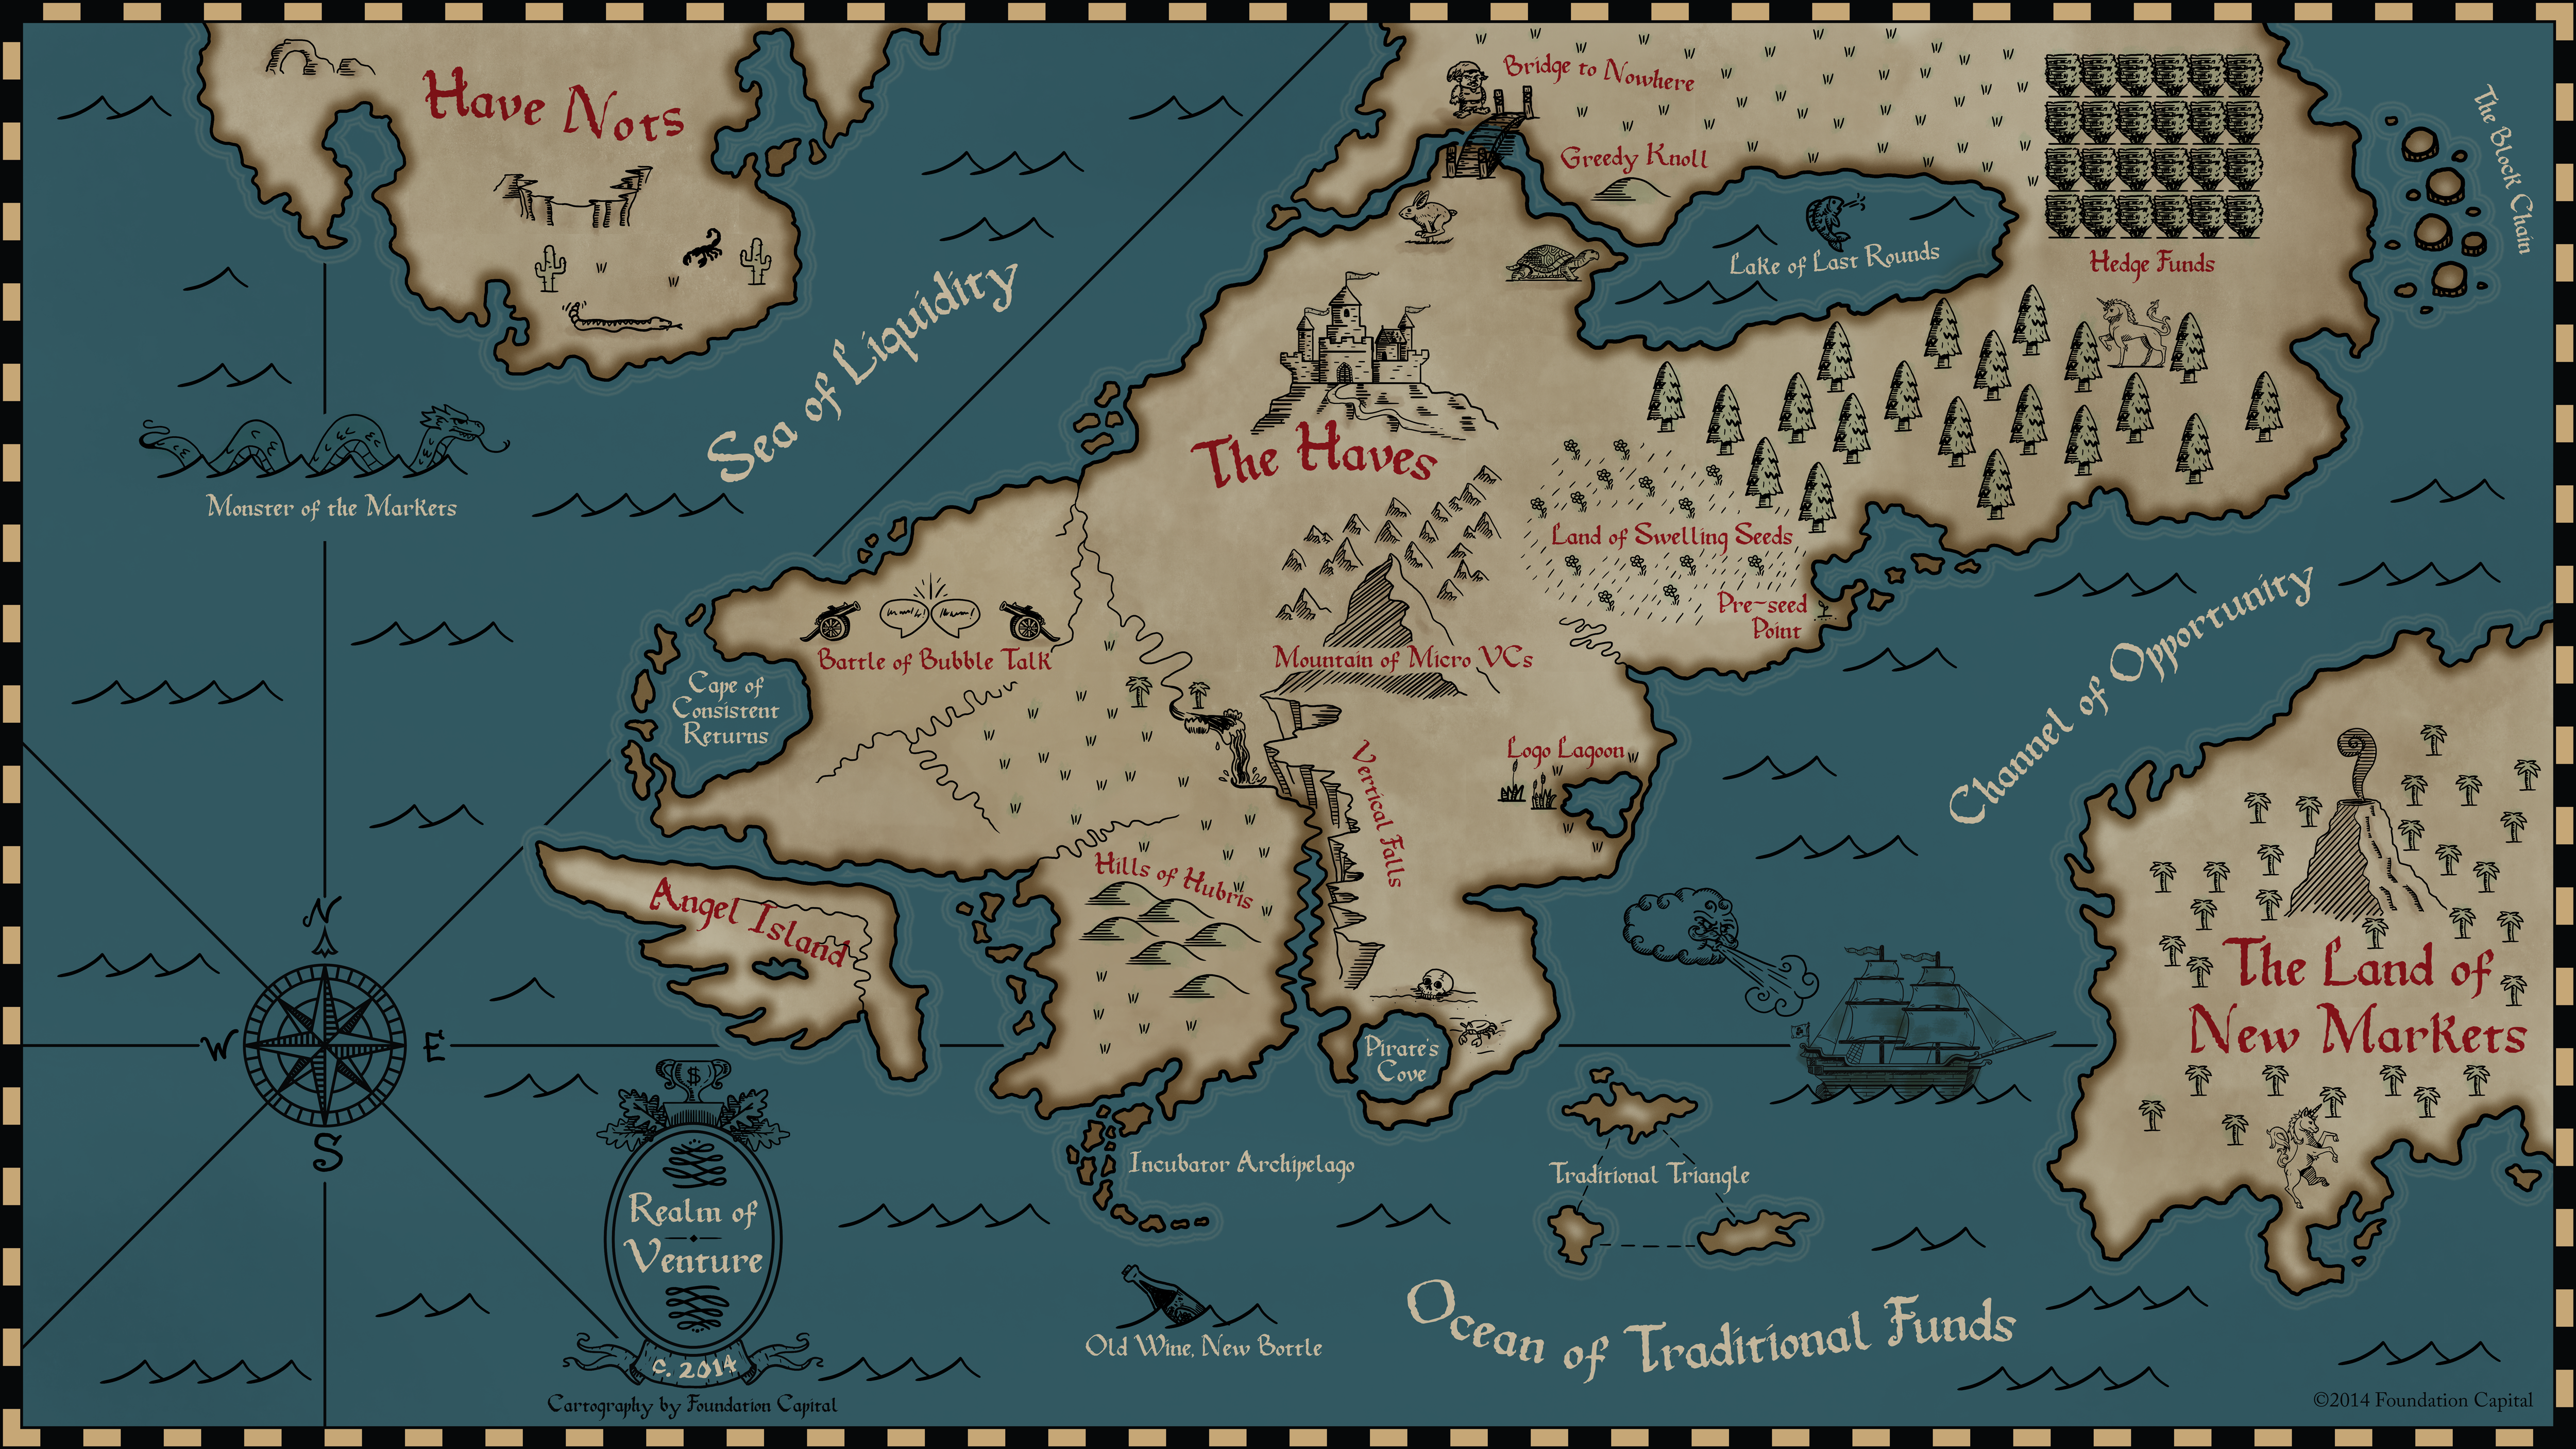 The-Realm-of-Venture-MAP_copyright-2014